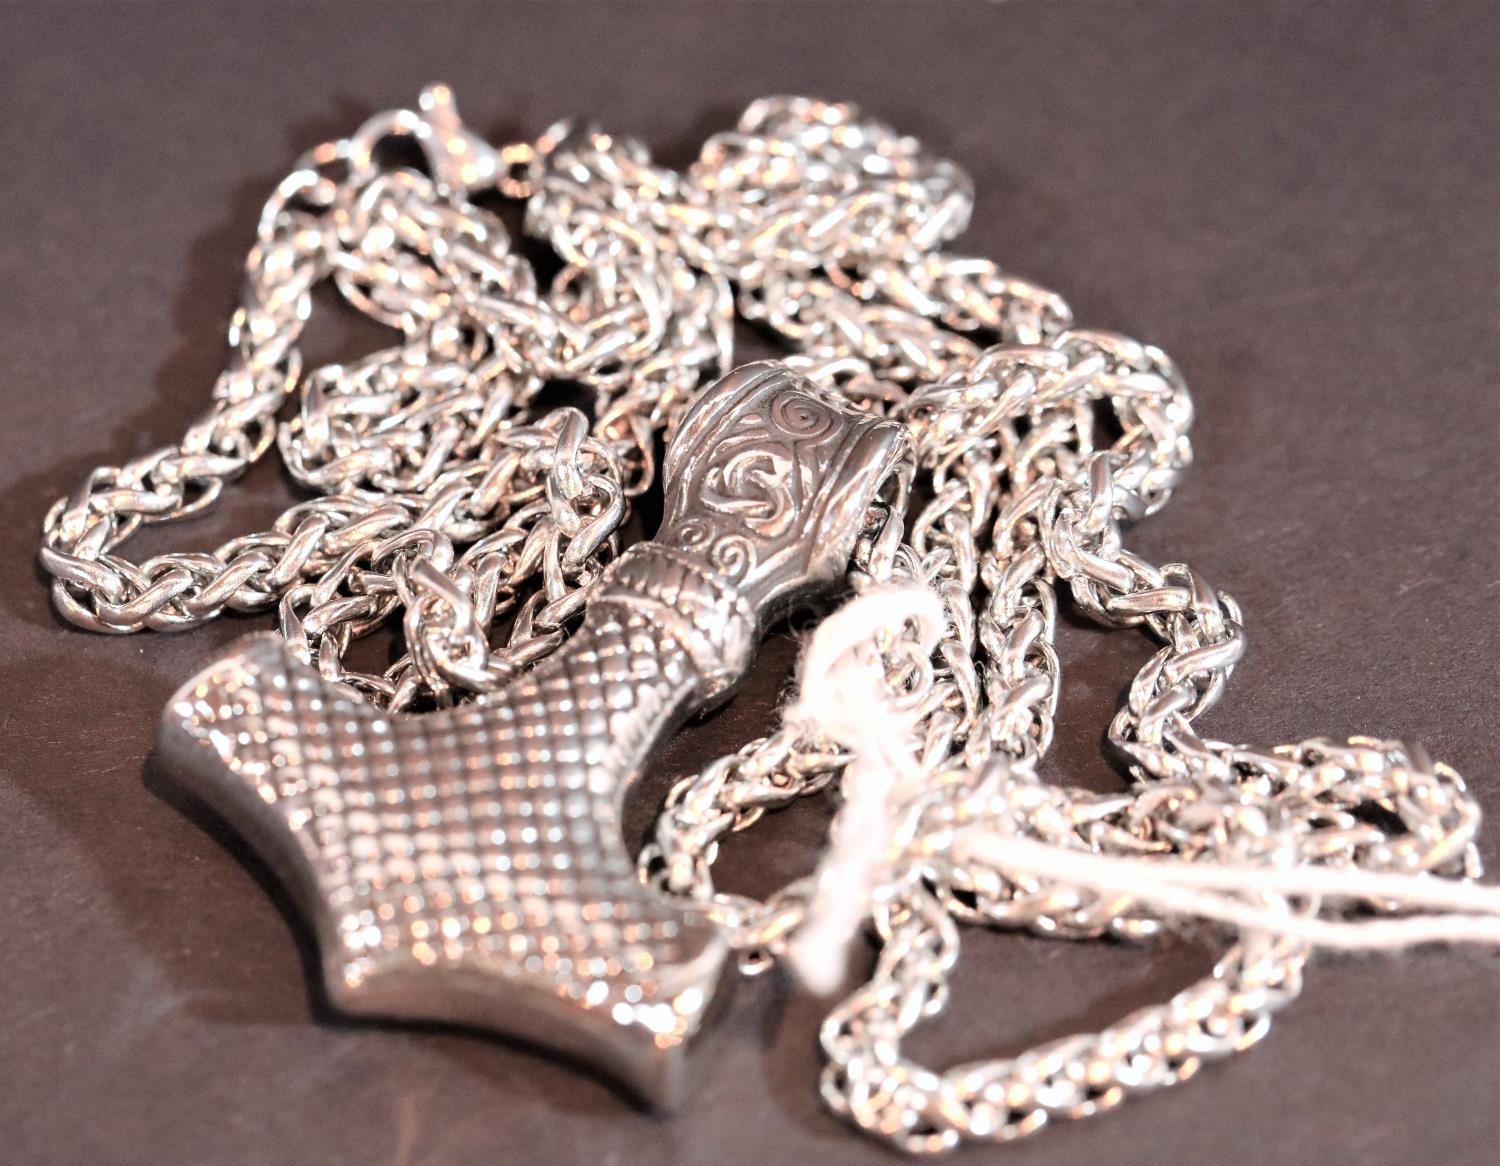 White metal Mjolnir Thor's Hammer pendant on matching chain, L: 4 cm. Not available for in-house P&P